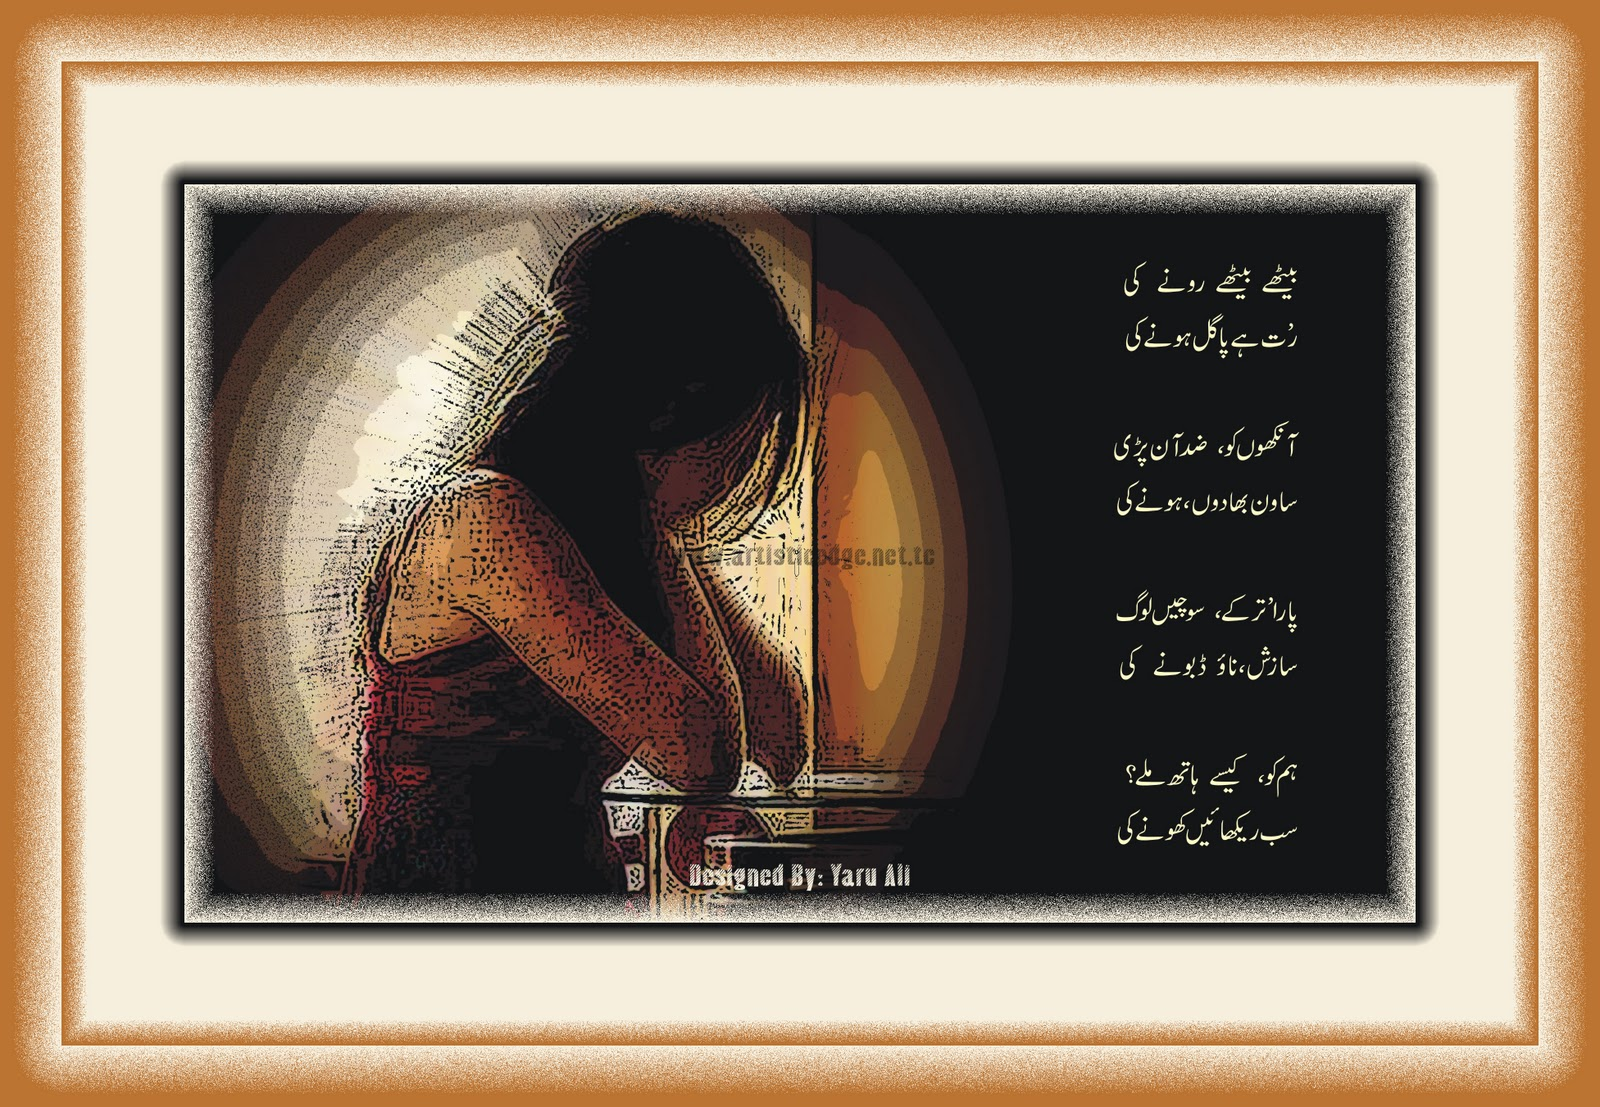 http://3.bp.blogspot.com/-R9DIwEiILa0/TvLad_y4HoI/AAAAAAAAAZs/lQX-oMWIwK4/s1600/Sad+Poetry+Wallpapers+in+Urdu.jpg